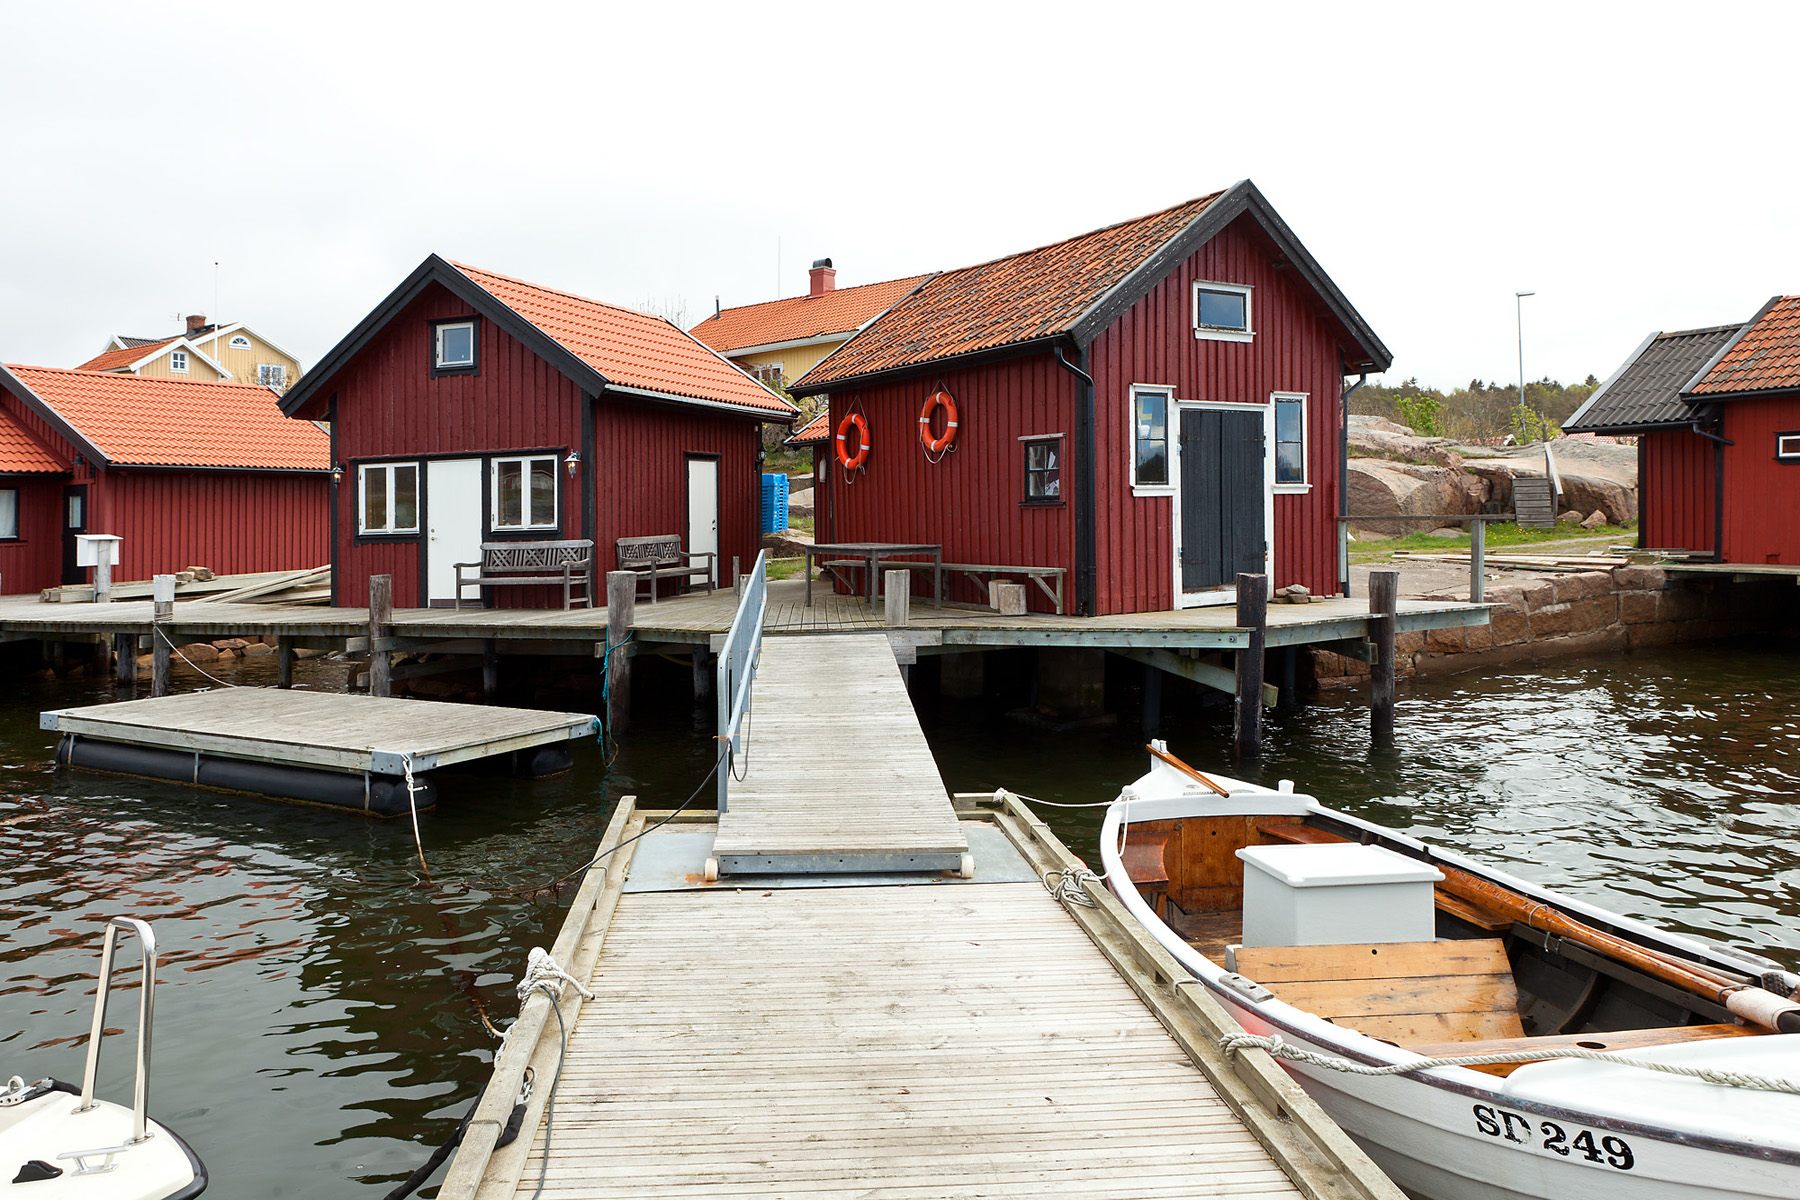 Single Family Home for Sale at Archipelago house with two boathouses and a large dock Långesjö 19 Other Vastra Gotaland, Vastra Gotaland 45741 Sweden